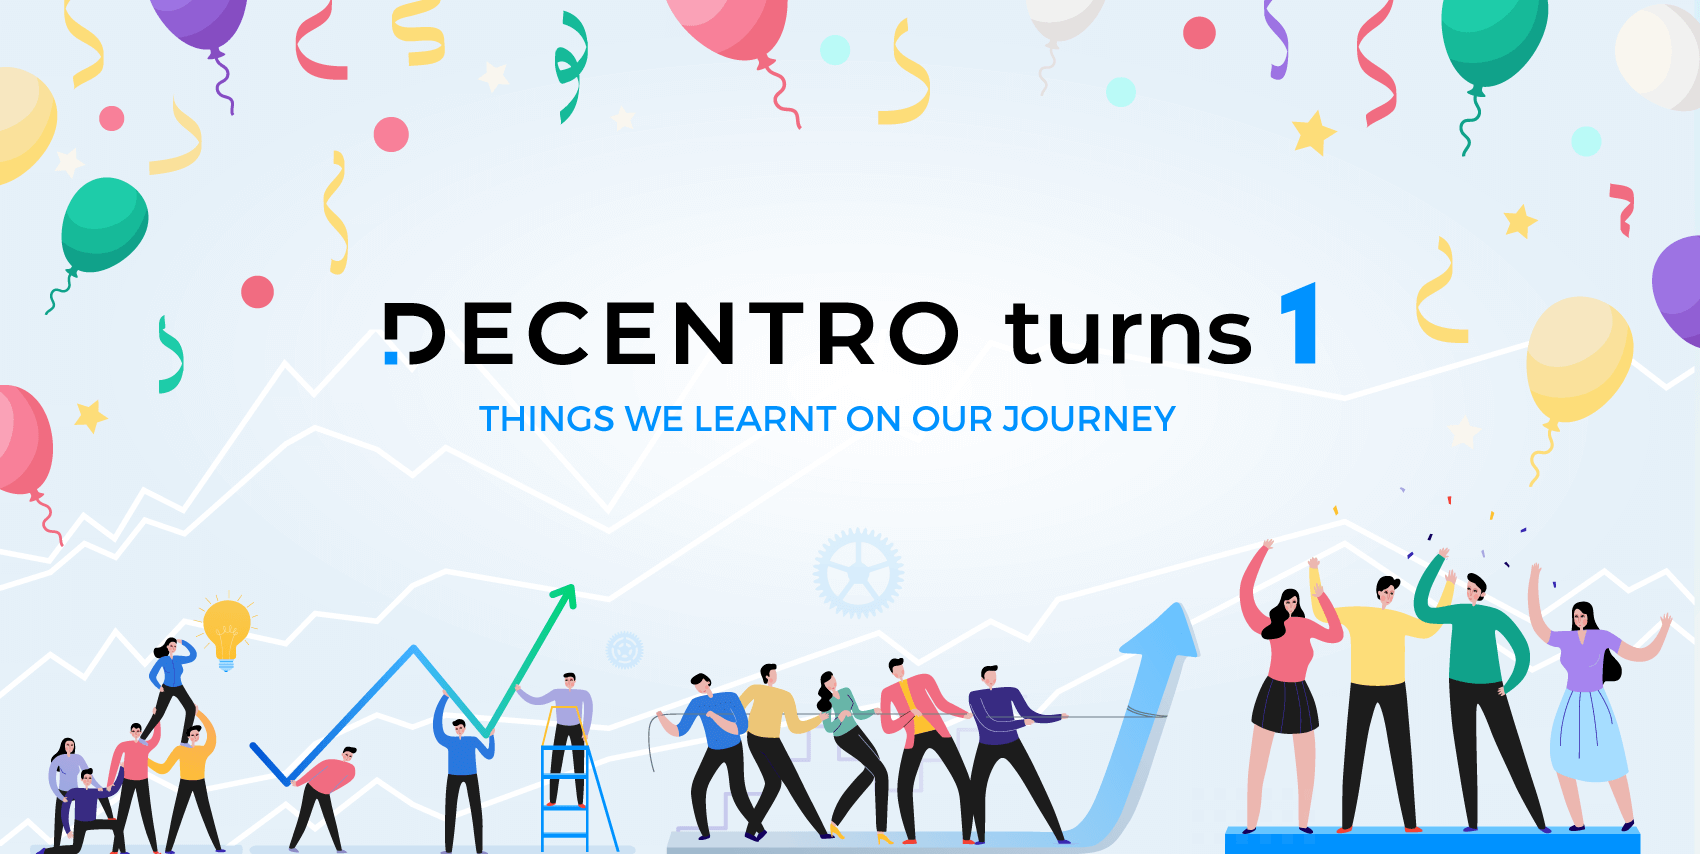 As Decentro turns one, here're the 8 things we learned as a product company & some lessons early stage venture founders can pick up.